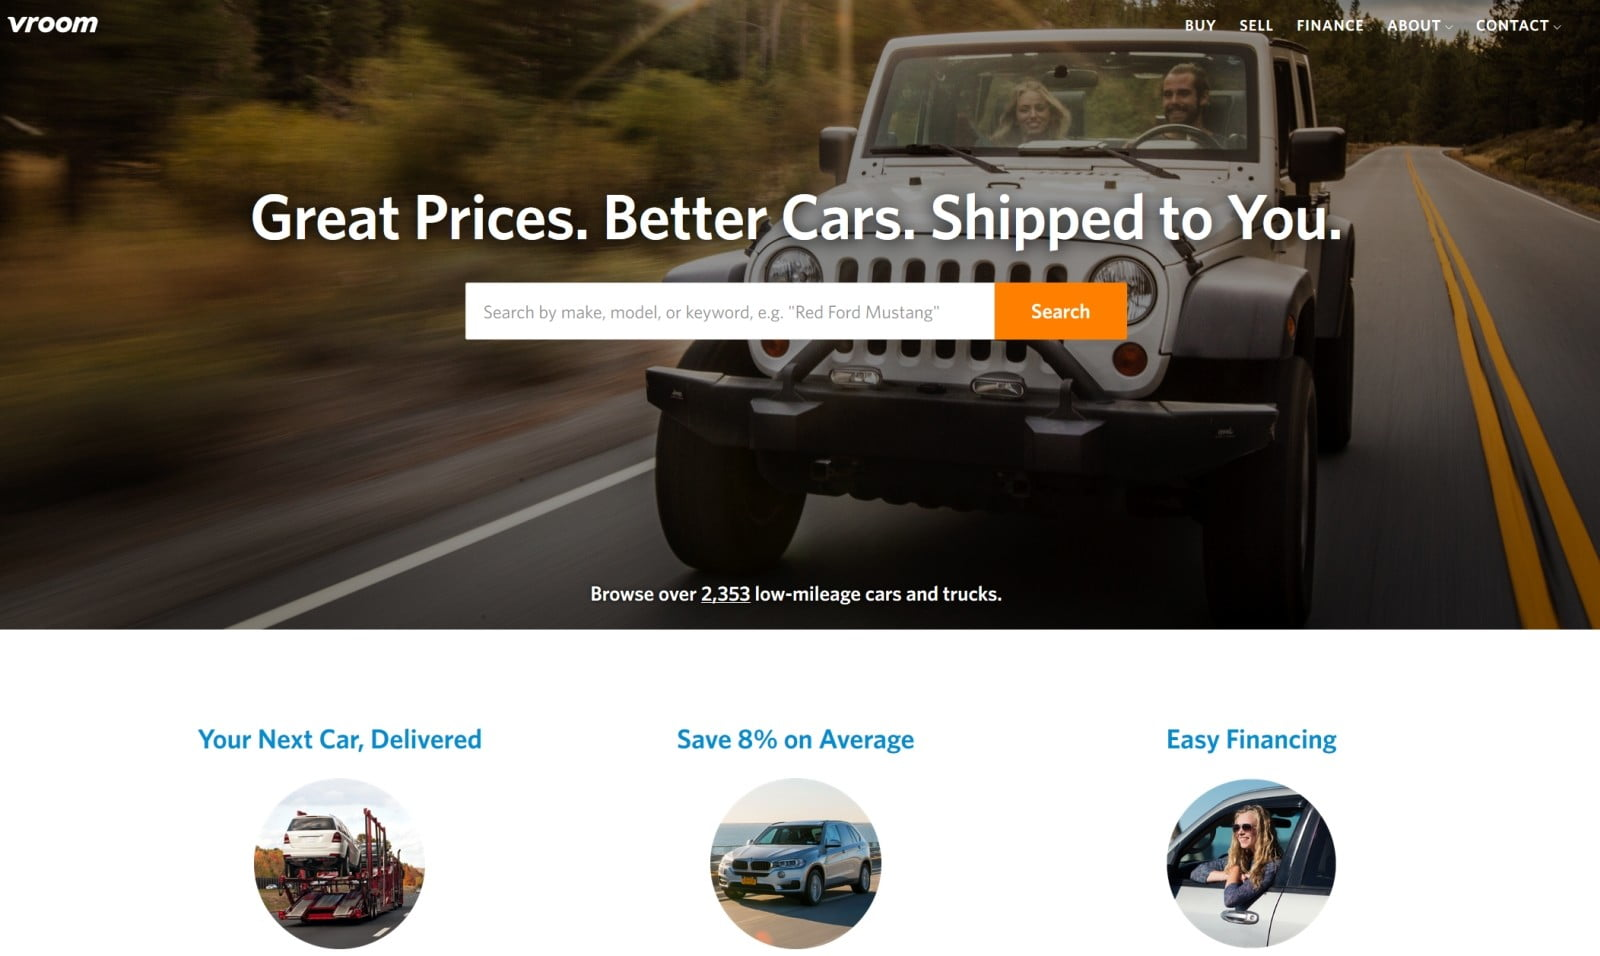 The Best Used Car Sites | Autotrader, Craigslist, and More | Digital ...